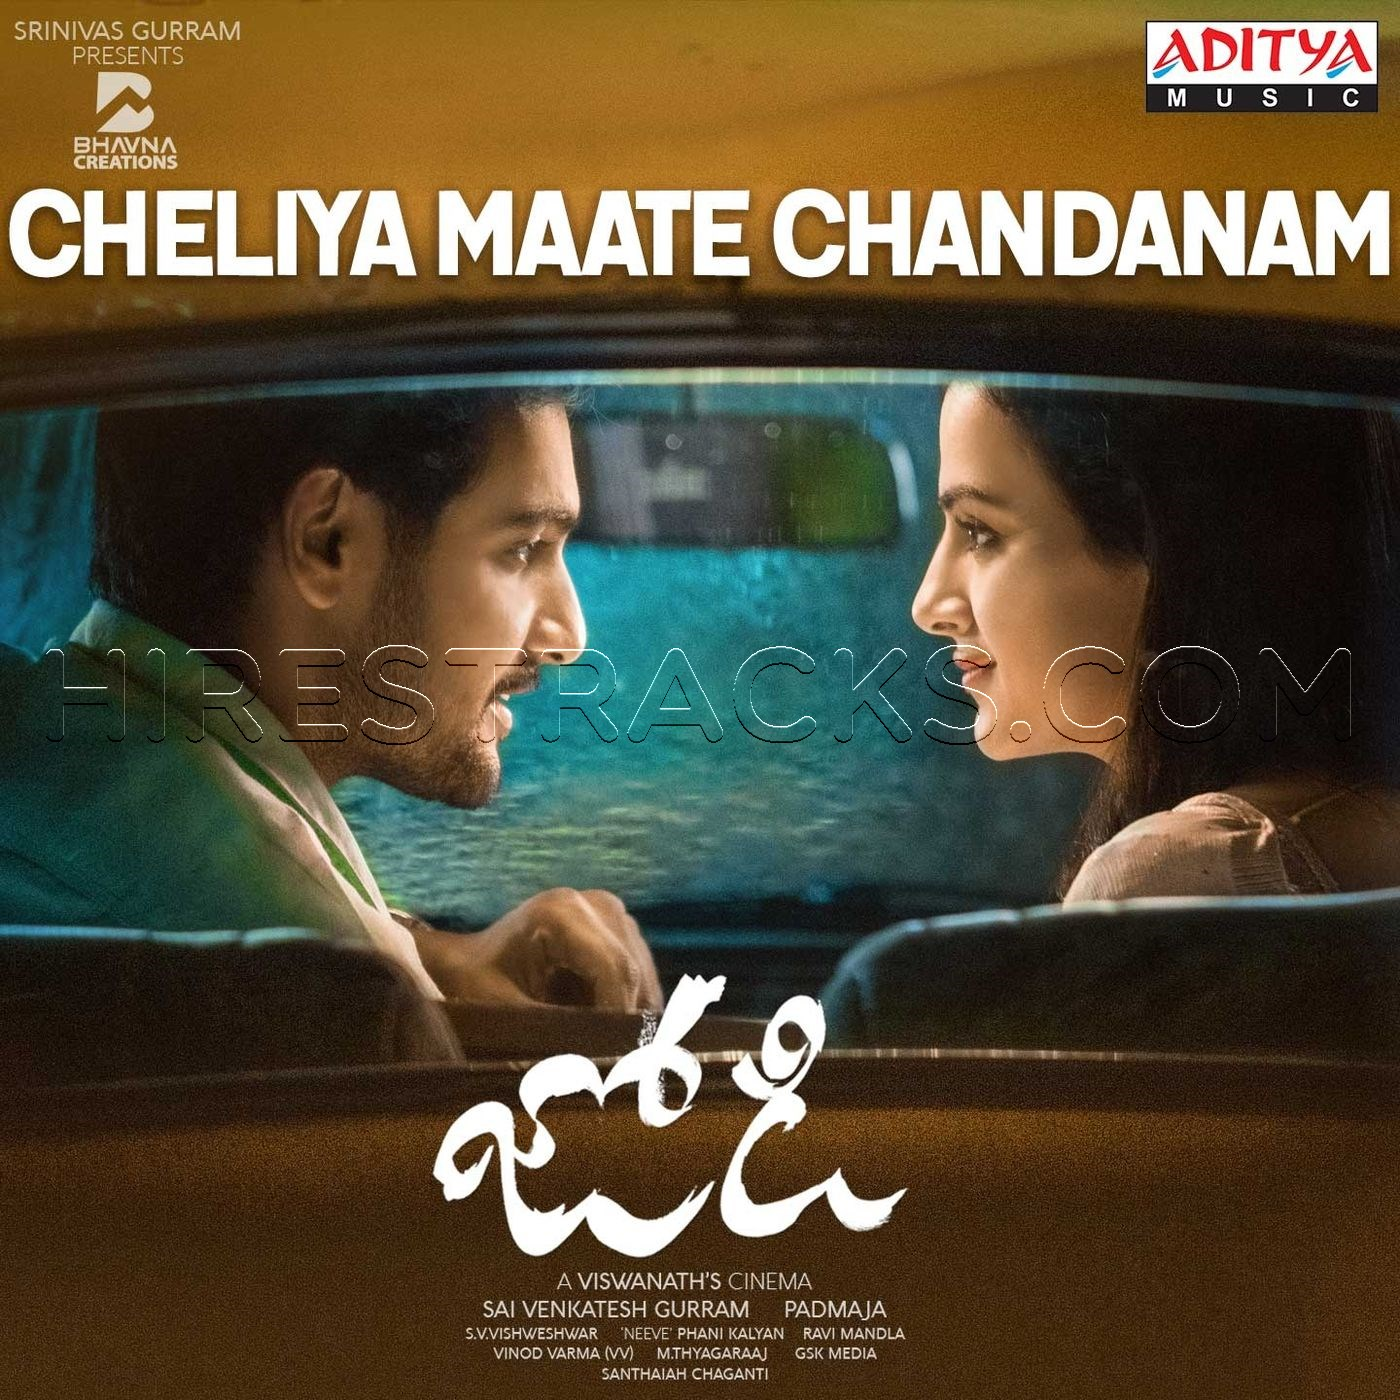 Cheliya Maate Chandanam (From Jodi) (2019) (Phani Kalyan) (Aditya Music)